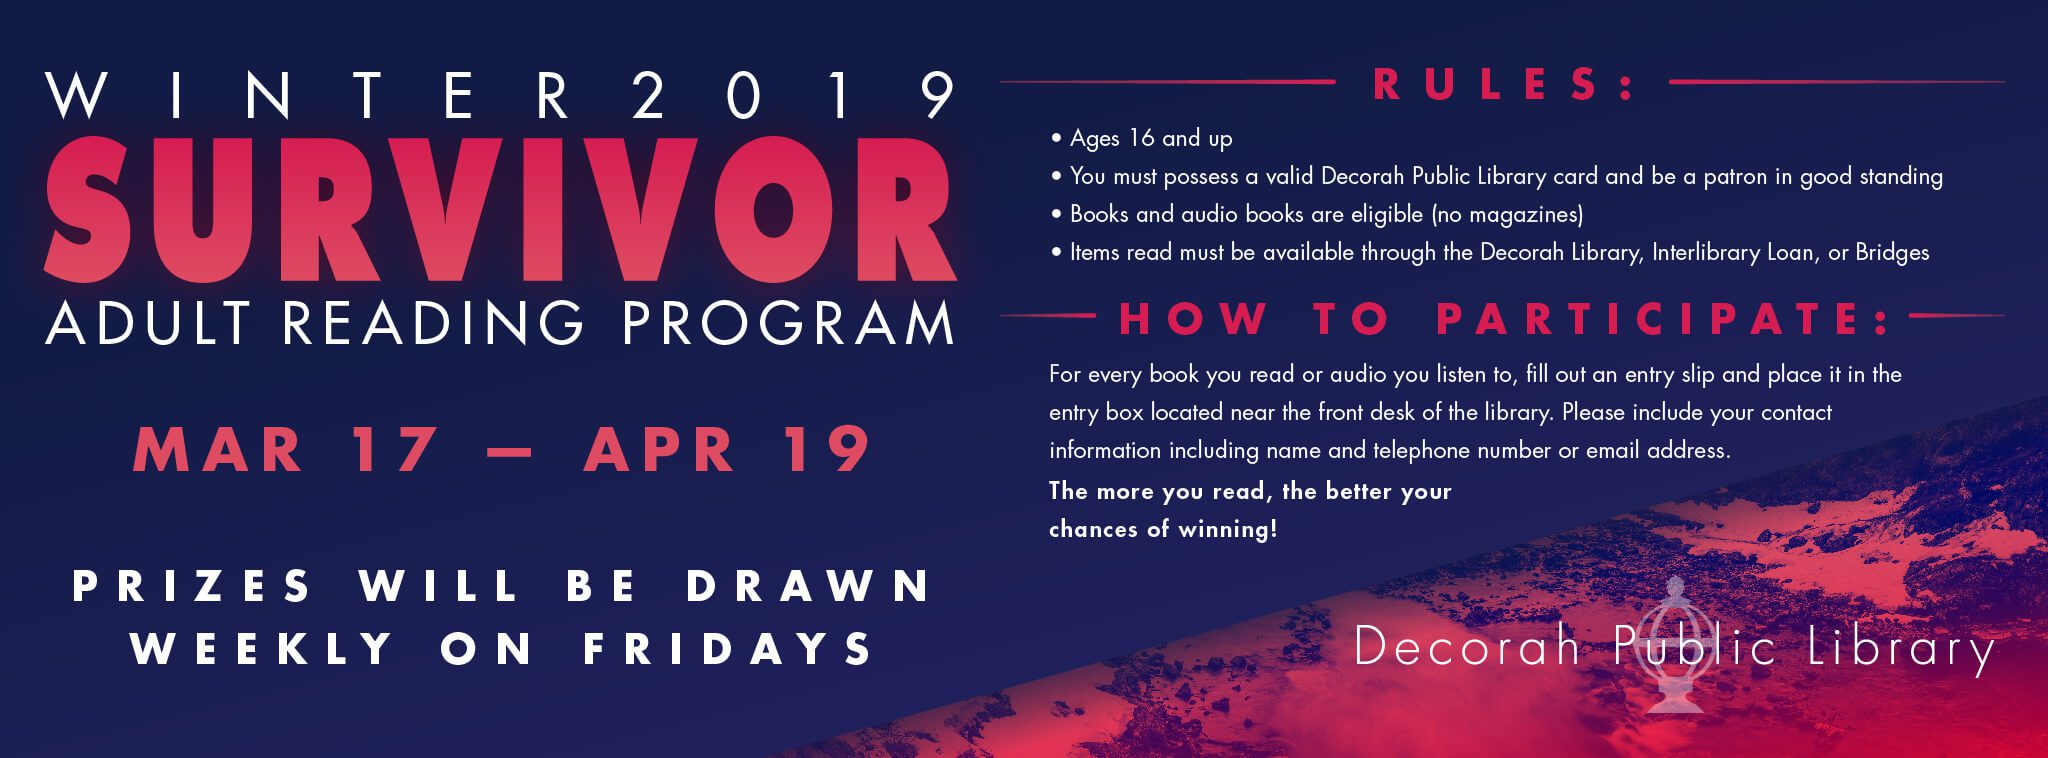 Winter 2019 Survivor Adult Reading Program